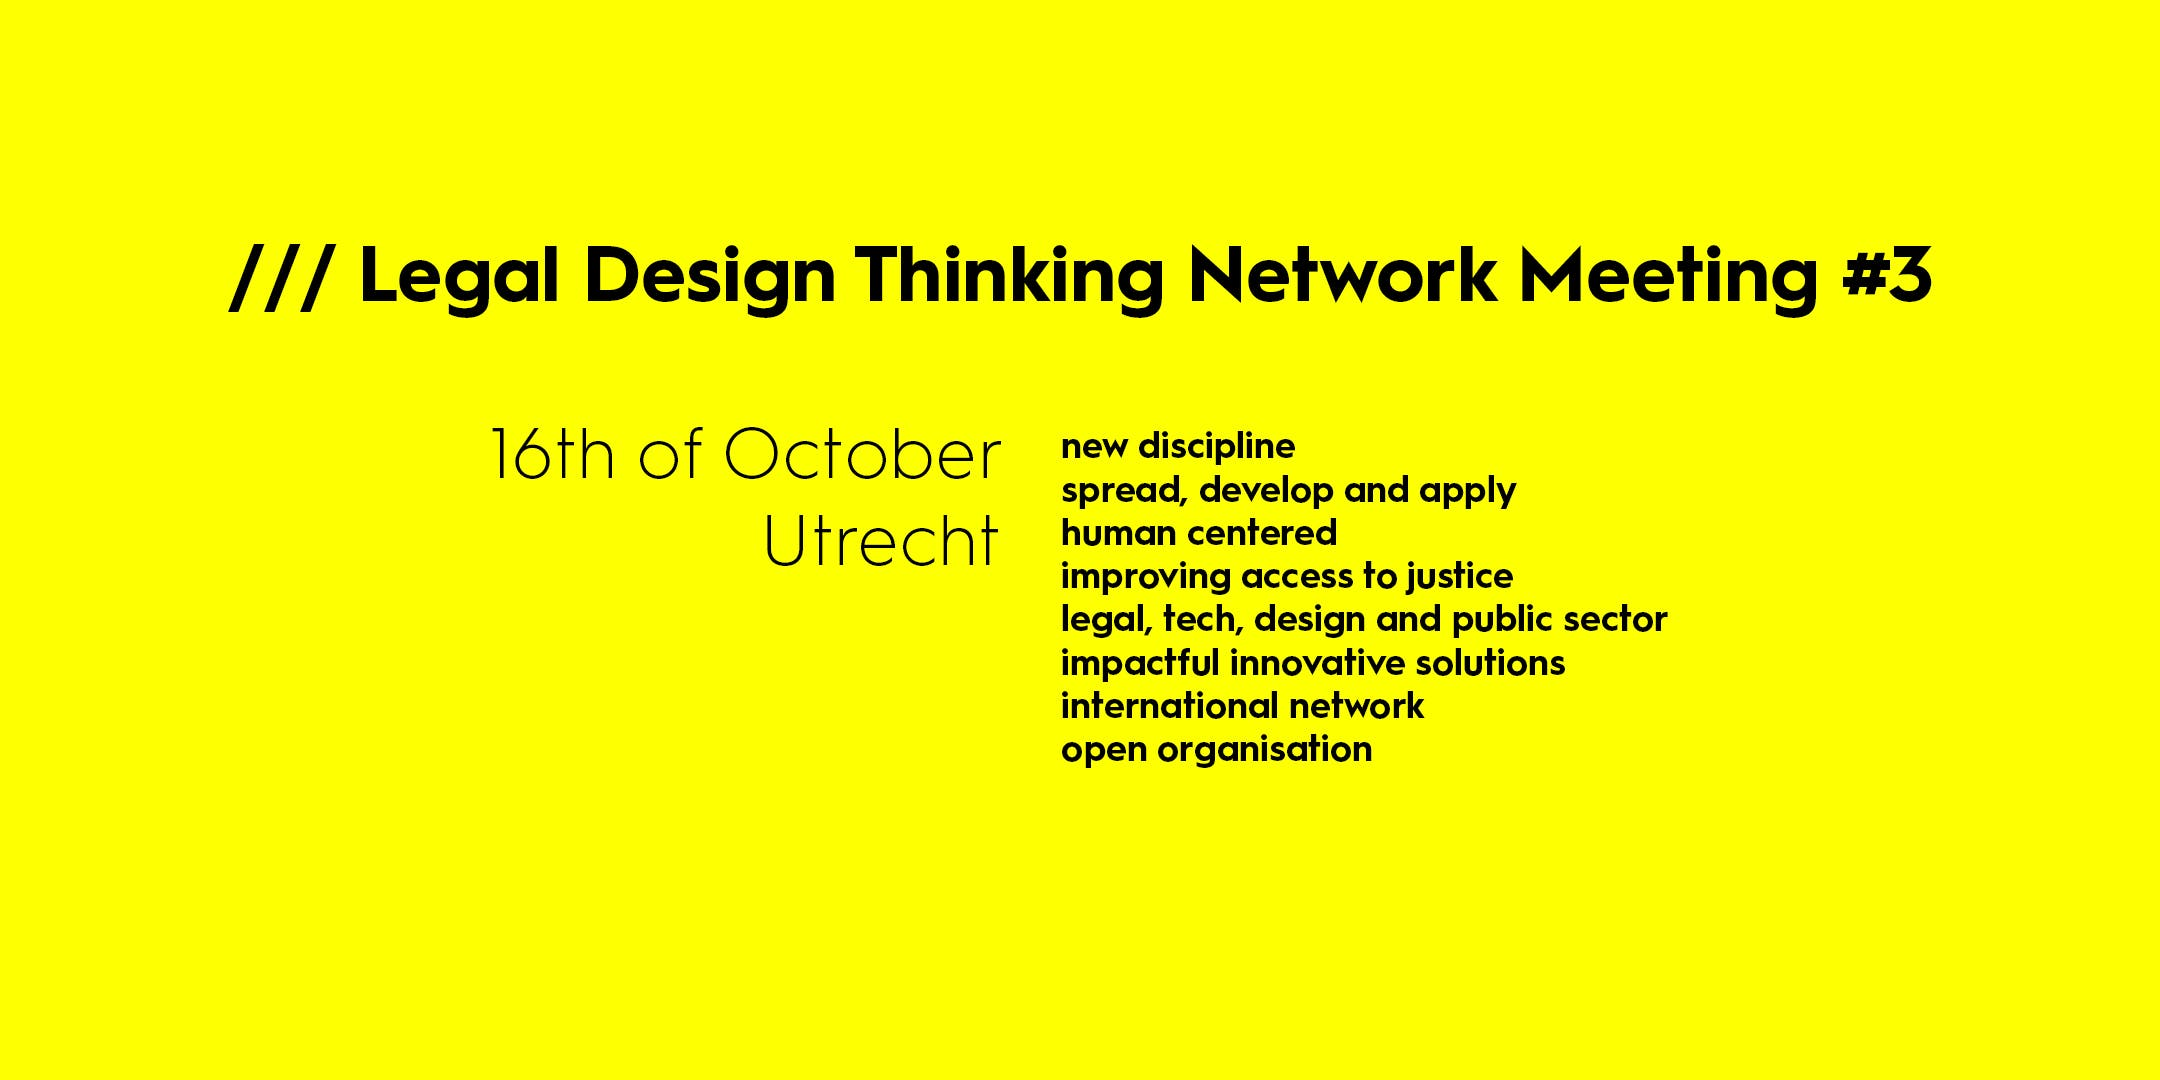 Legal Design Thinking Network meeting #3